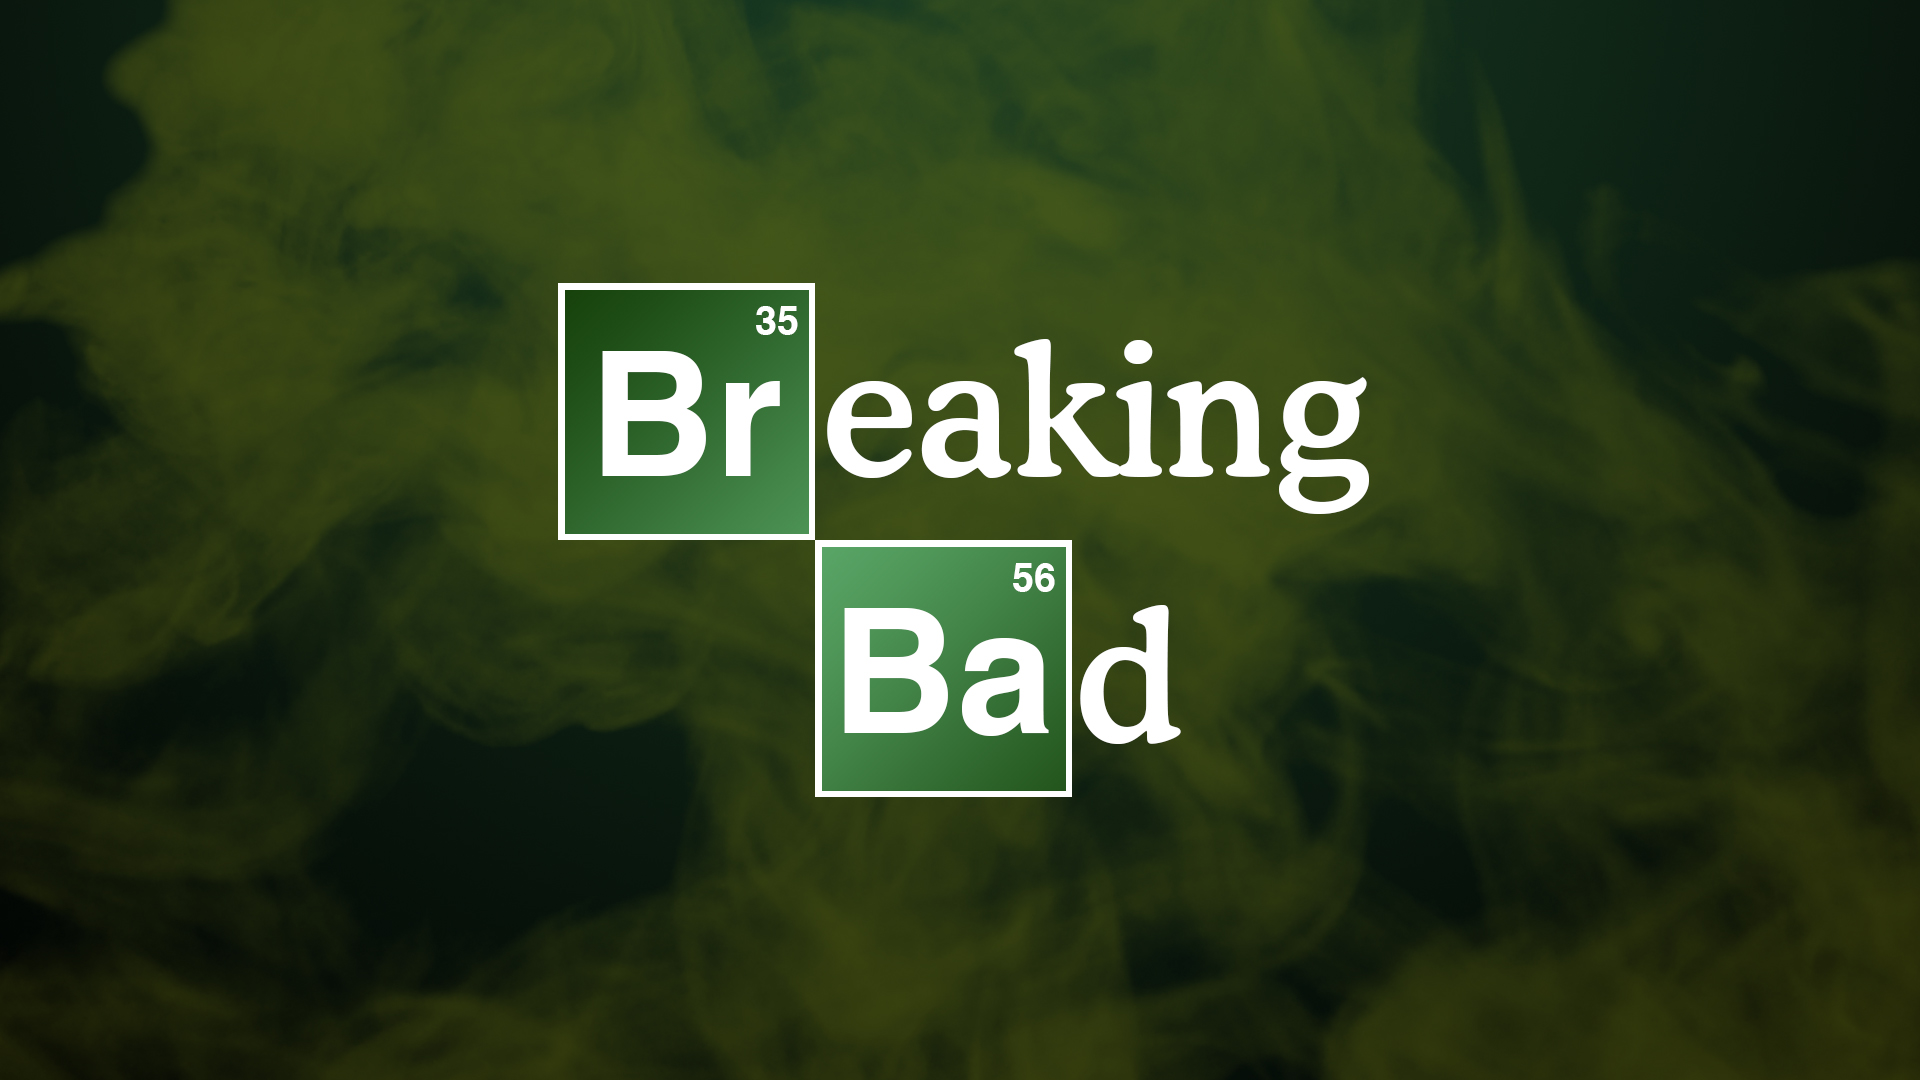 breaking_bad_template_by_dominicanjoker-d6fuvo2